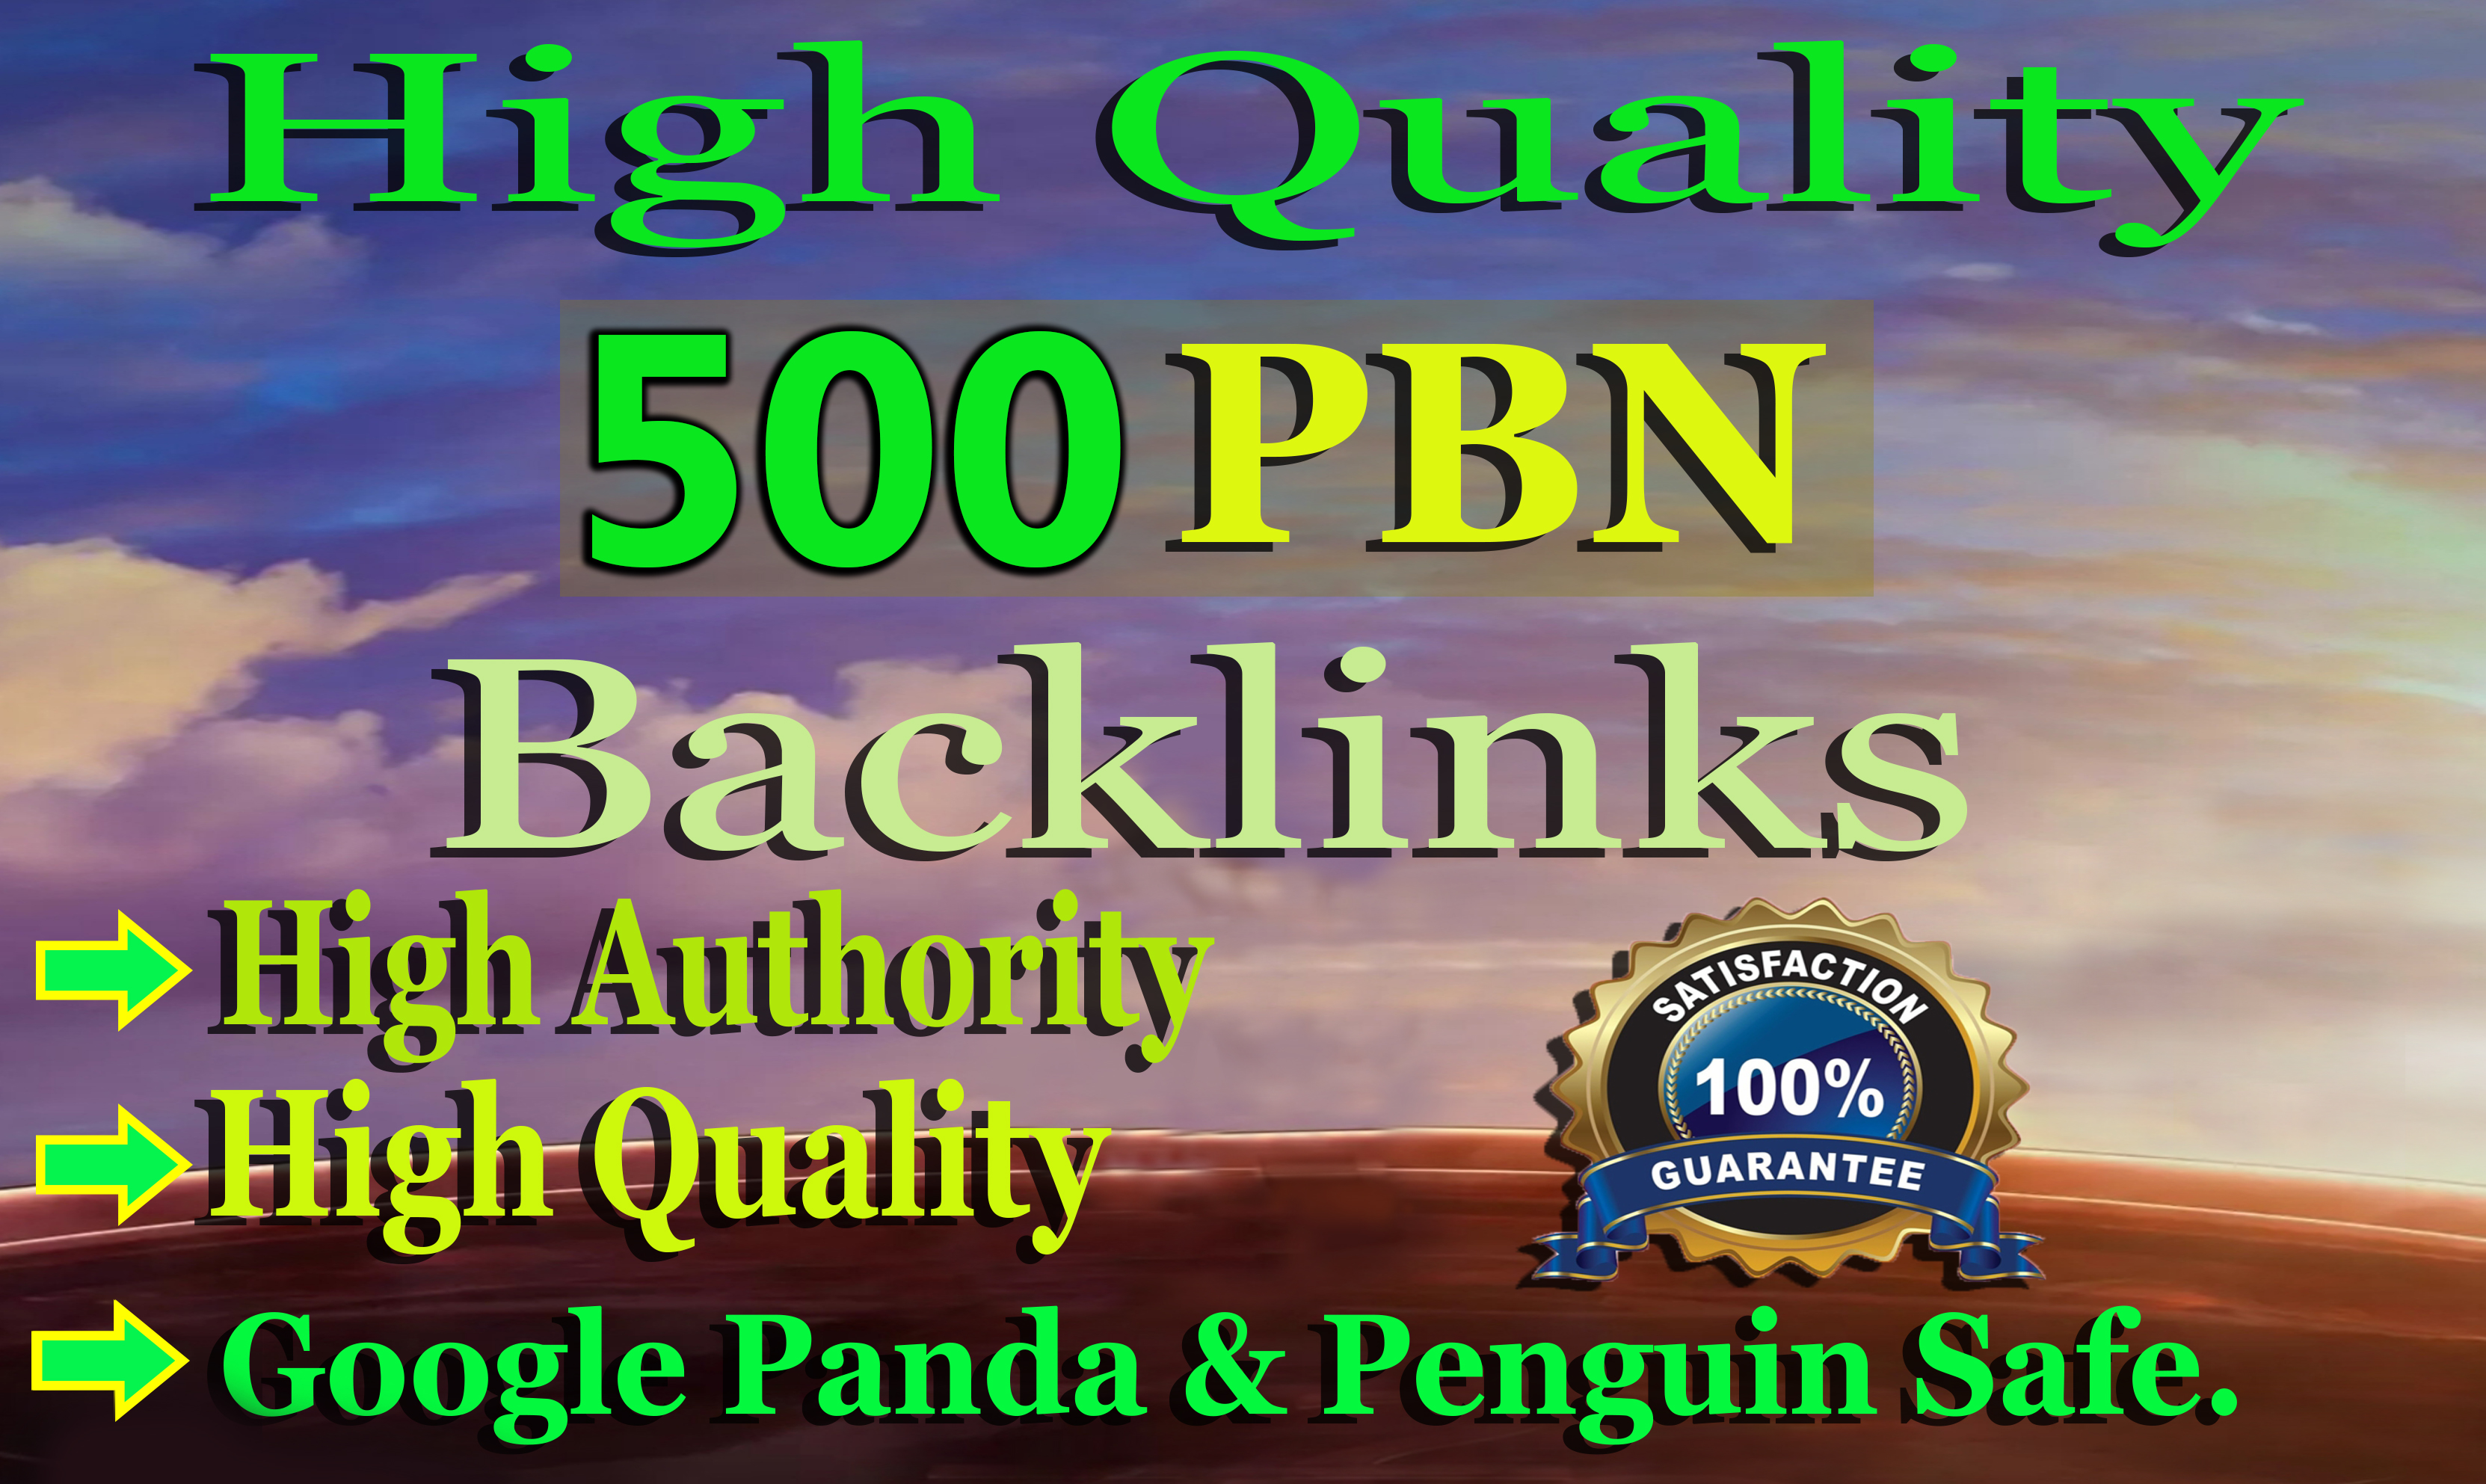 I will 500 Web2.0 PBN Backlinks to Boost your Website